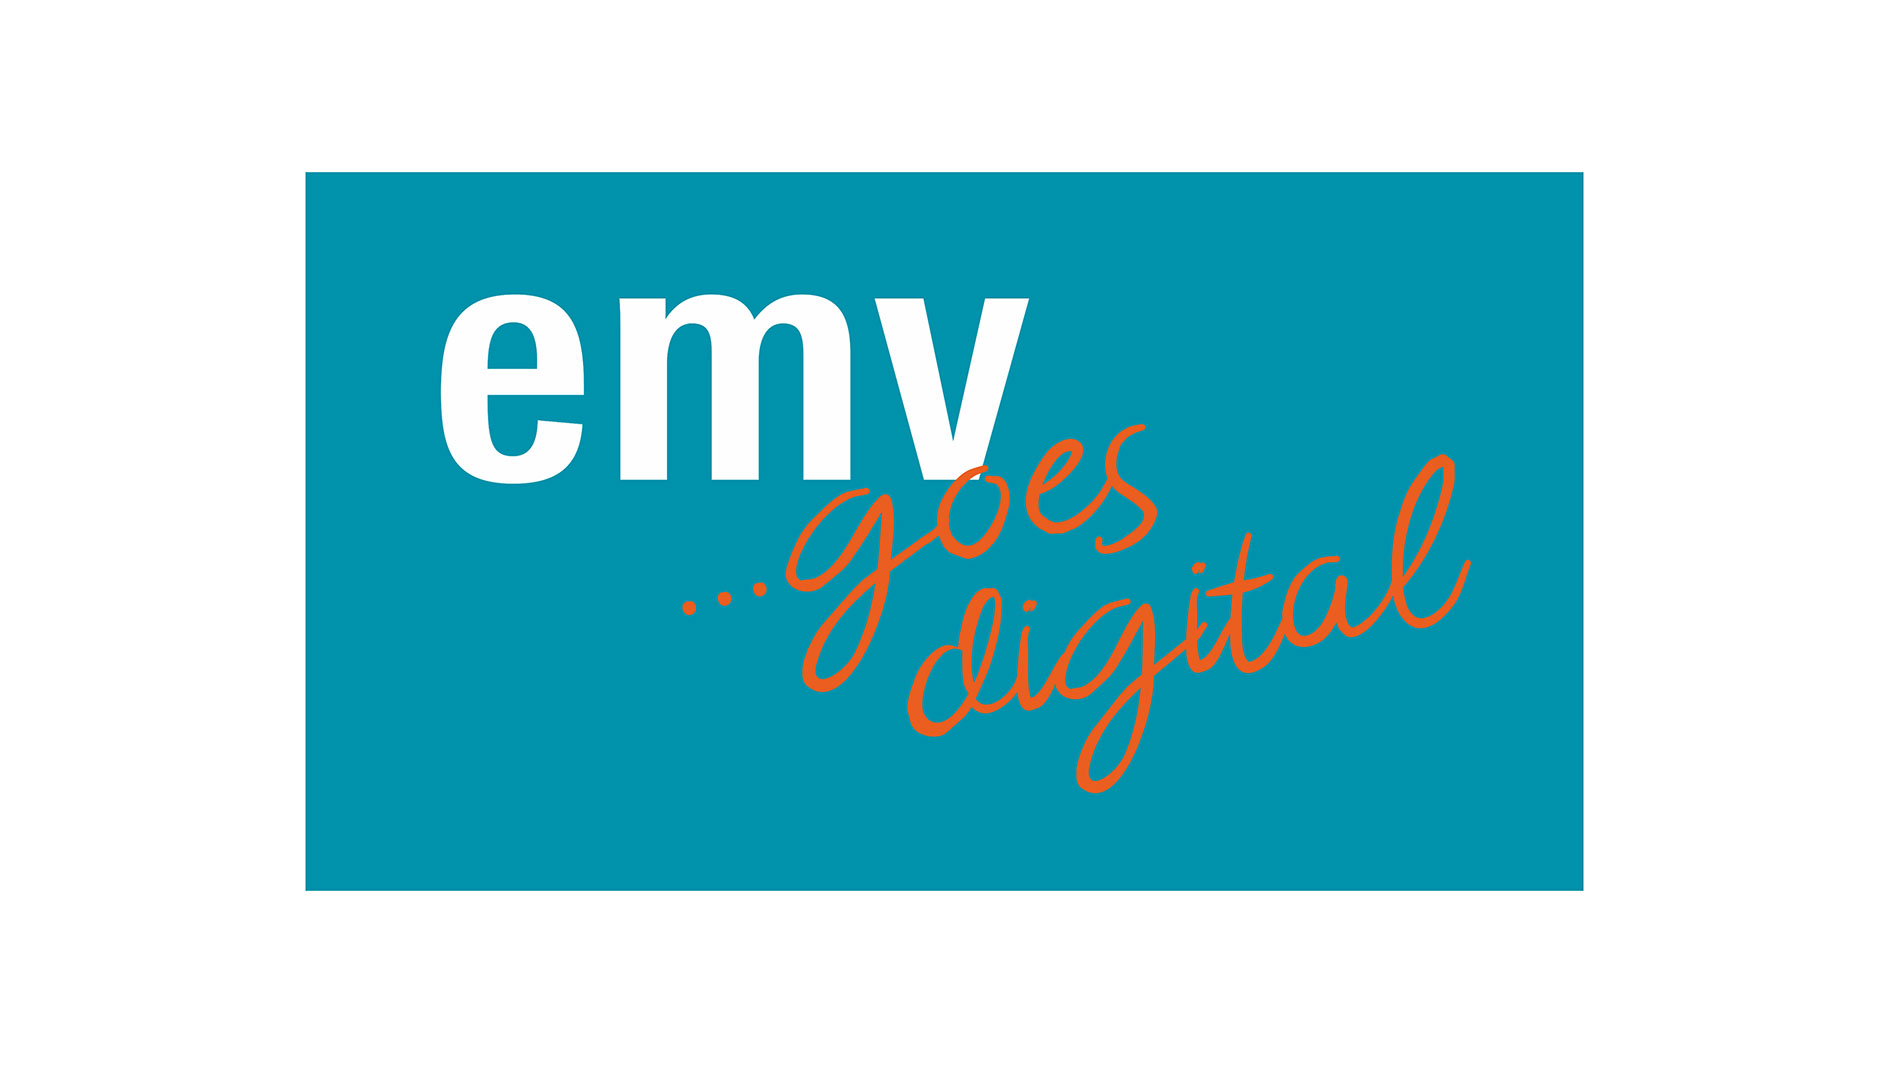 EMV21_digital_content